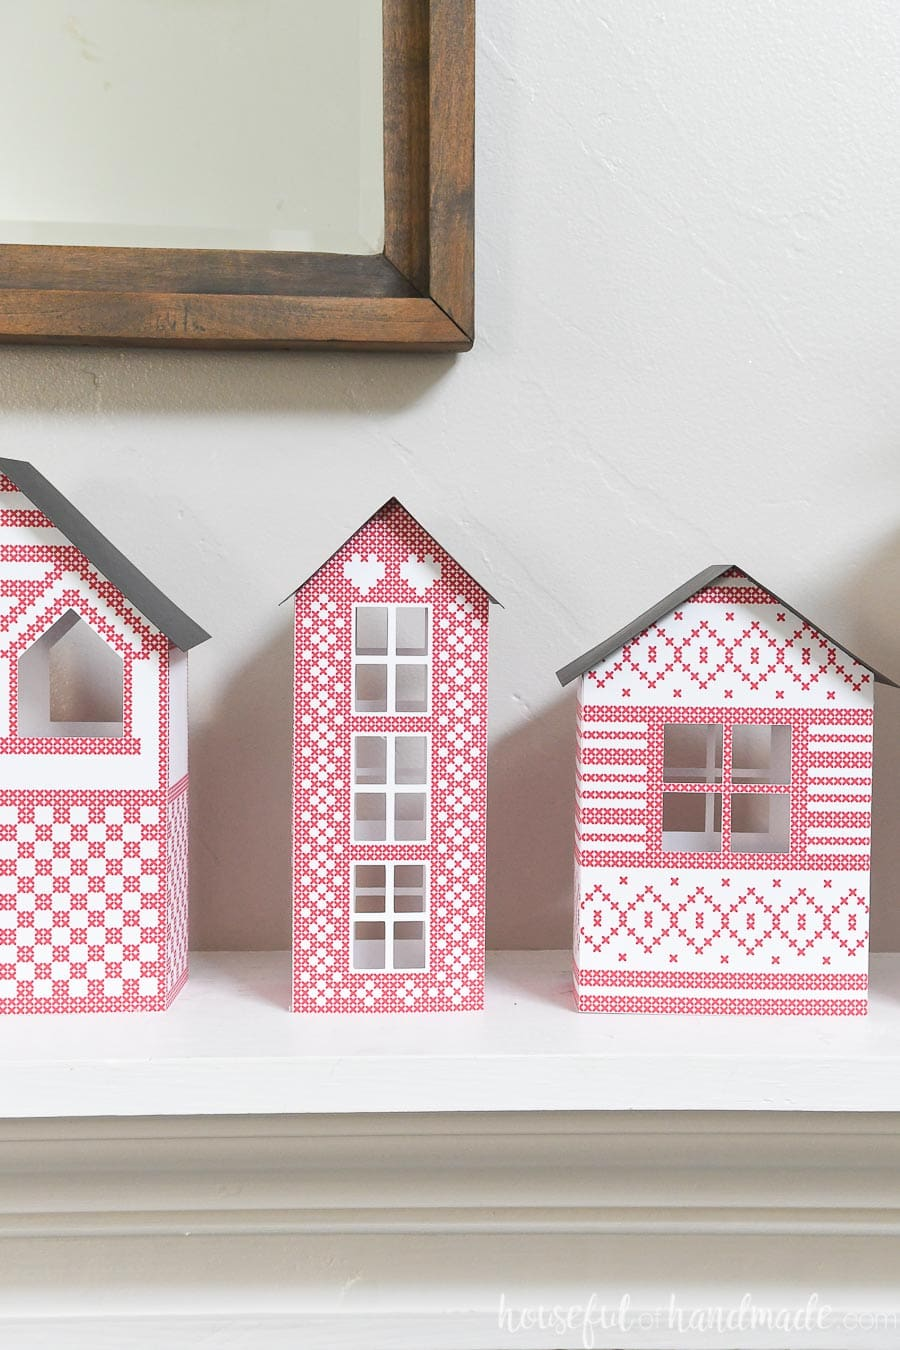 Paper Christmas village with Scandinavian inspired house designs with cross-stitched patterns on them.